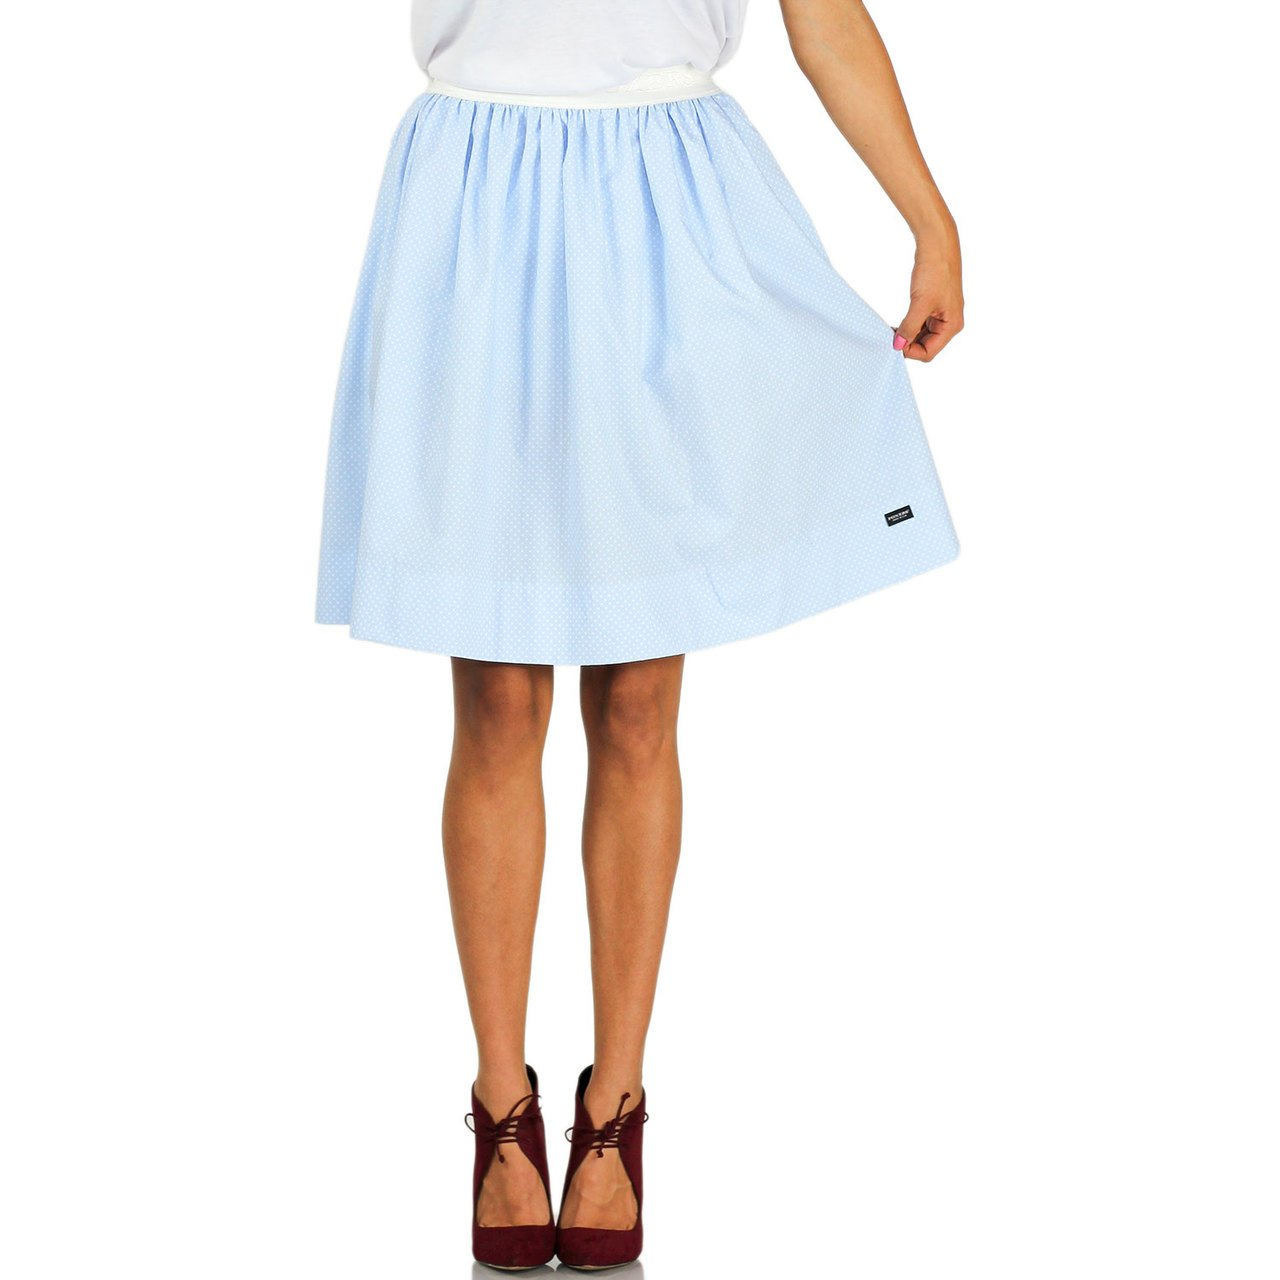 FOXERS Light Blue Dot Skirt With Pockets